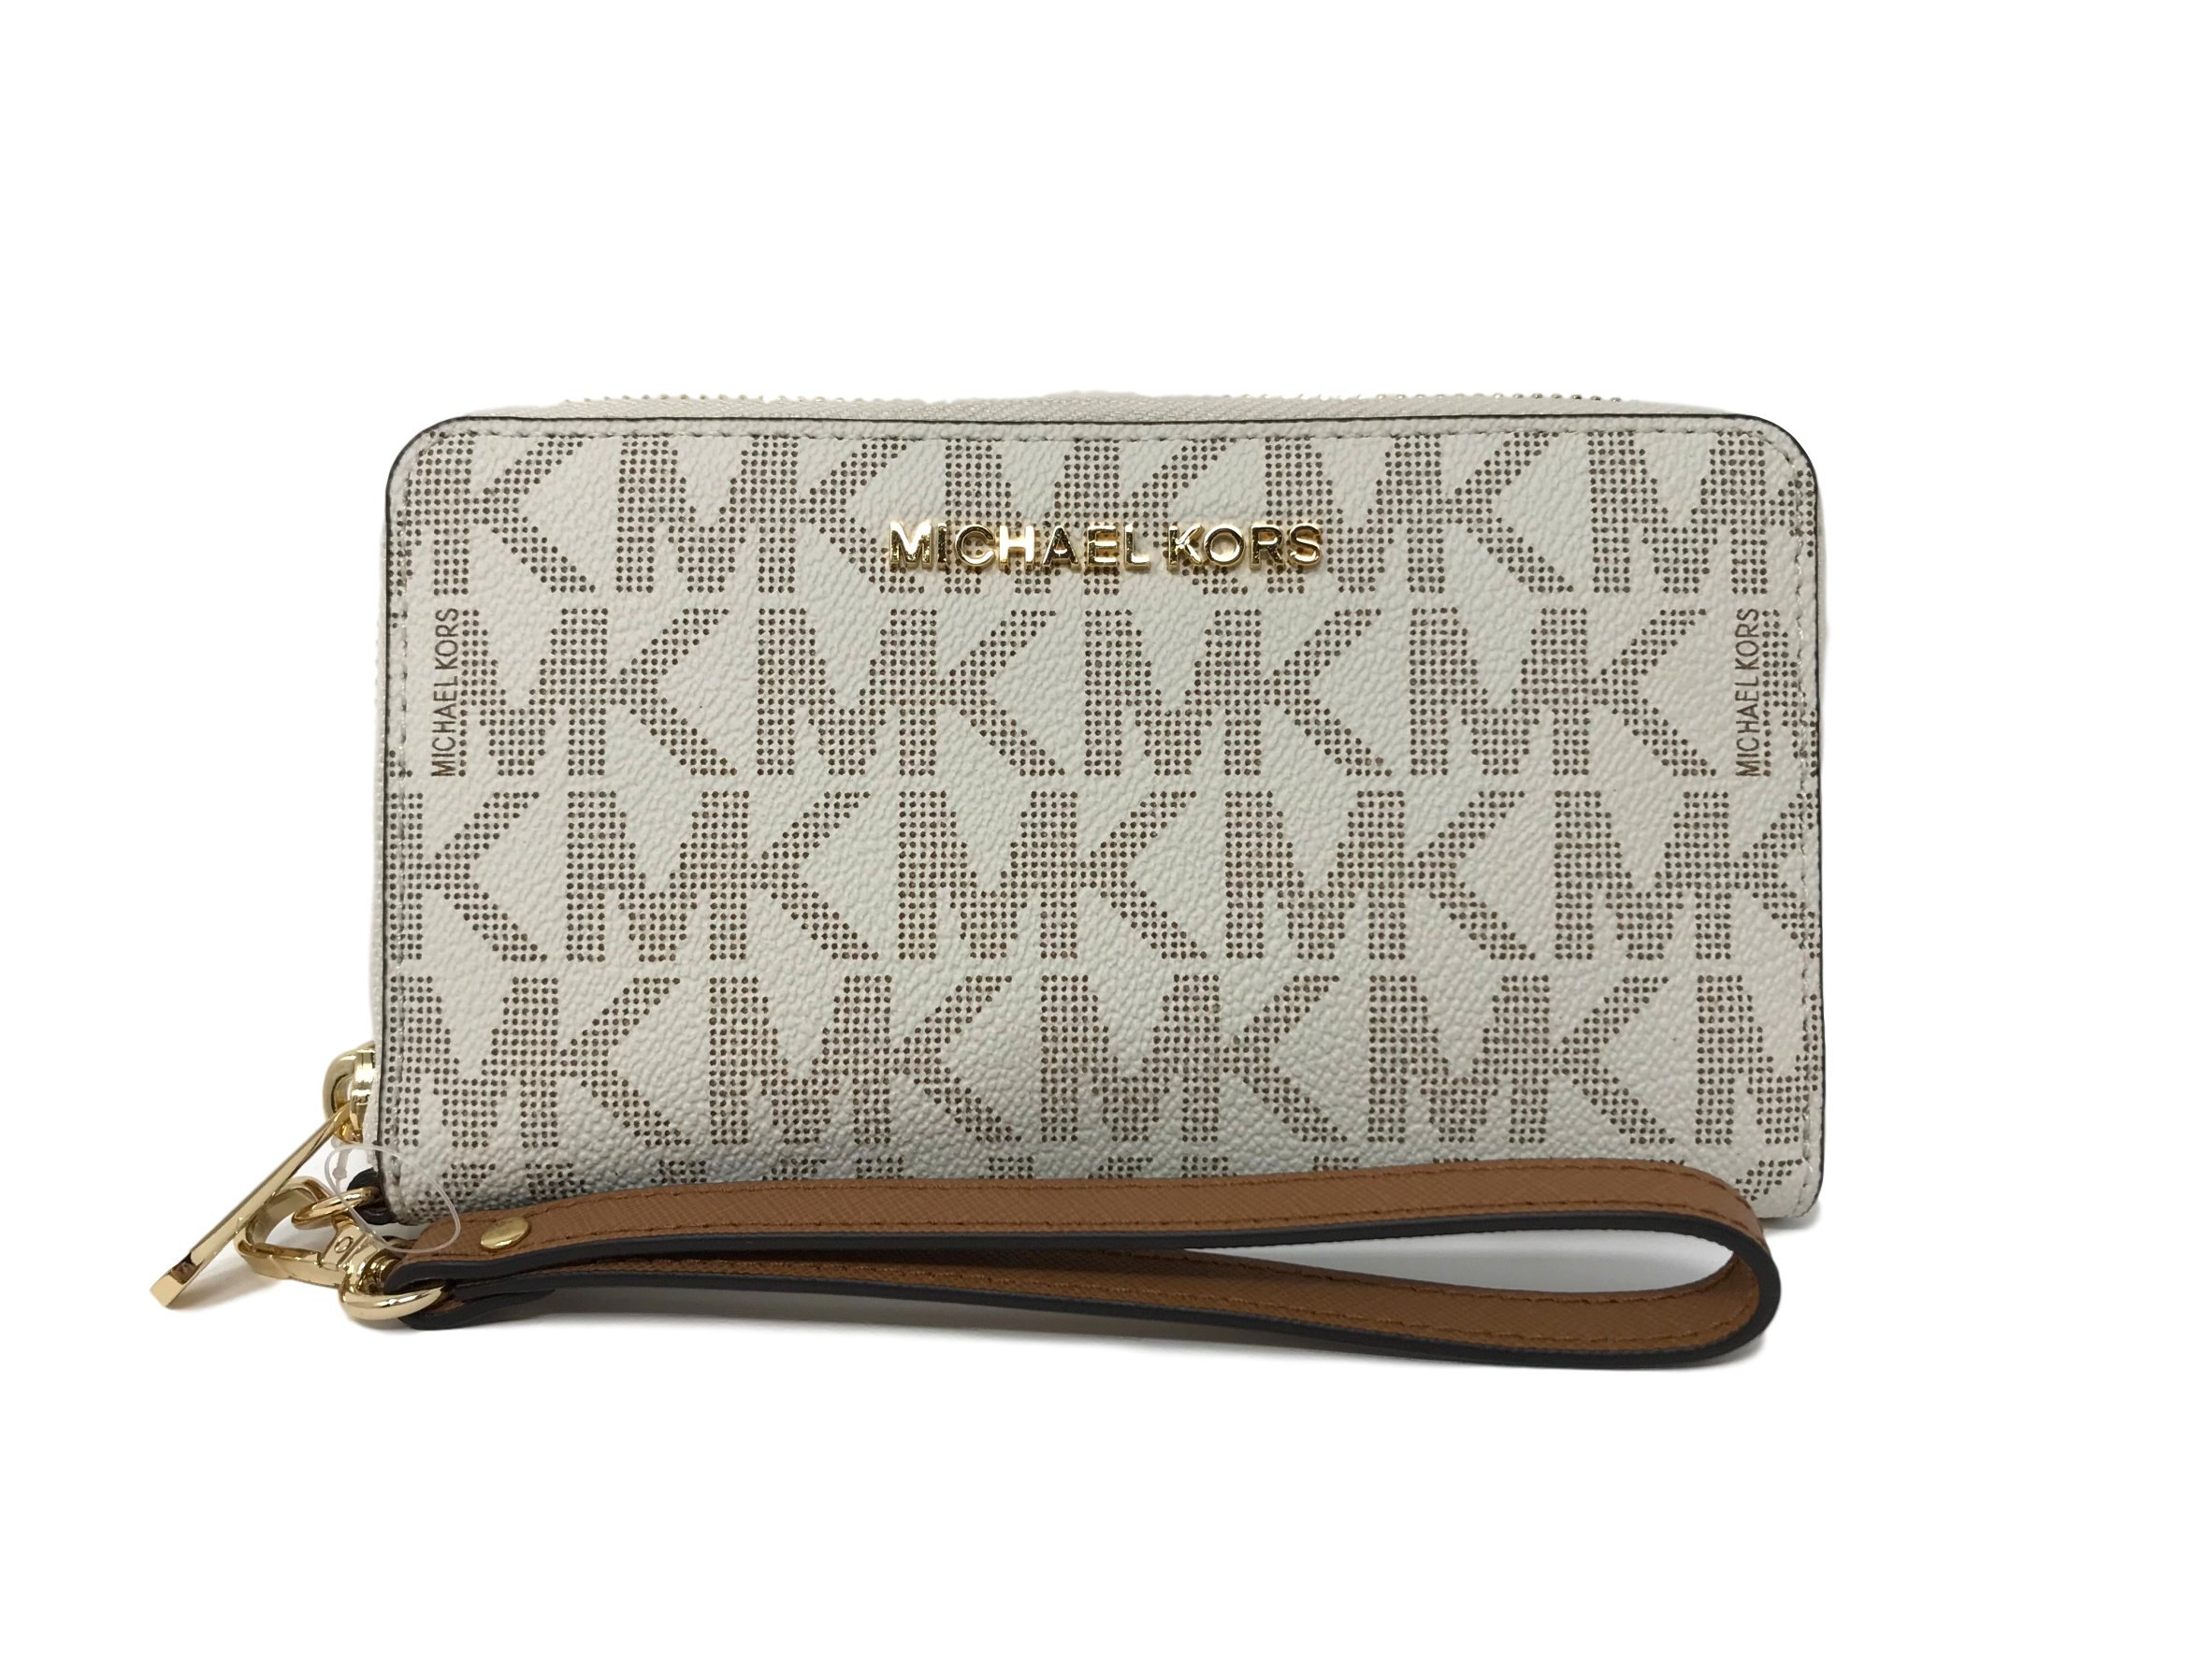 Michael Kors Jet Set Travel Signature PVC Large Flat Multifunction Phone Case Wristlet (Vanilla/Acorn)